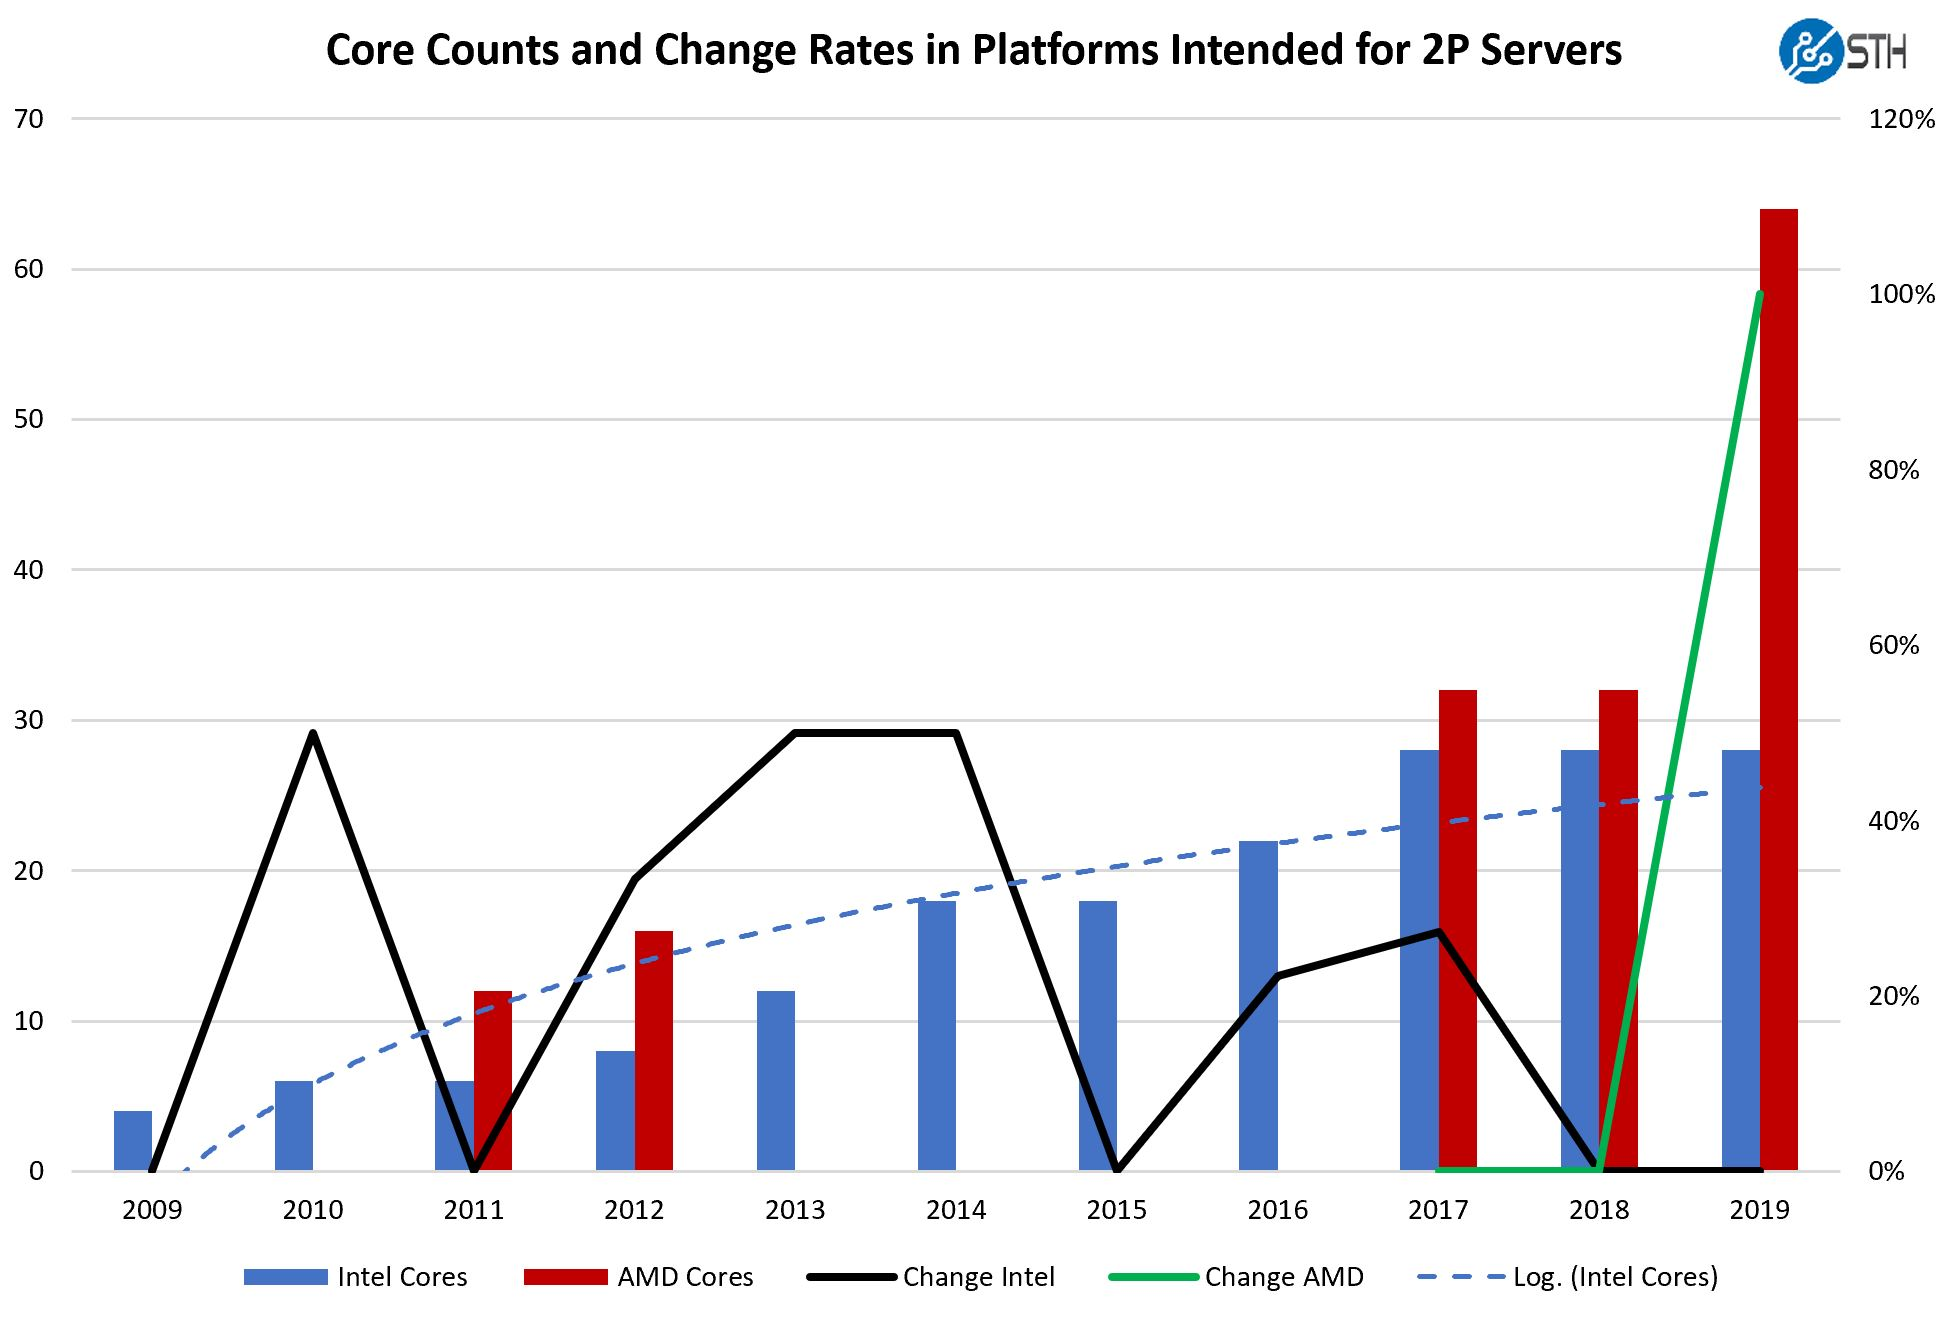 Core Counts And Change Rates 2009 Through 2019